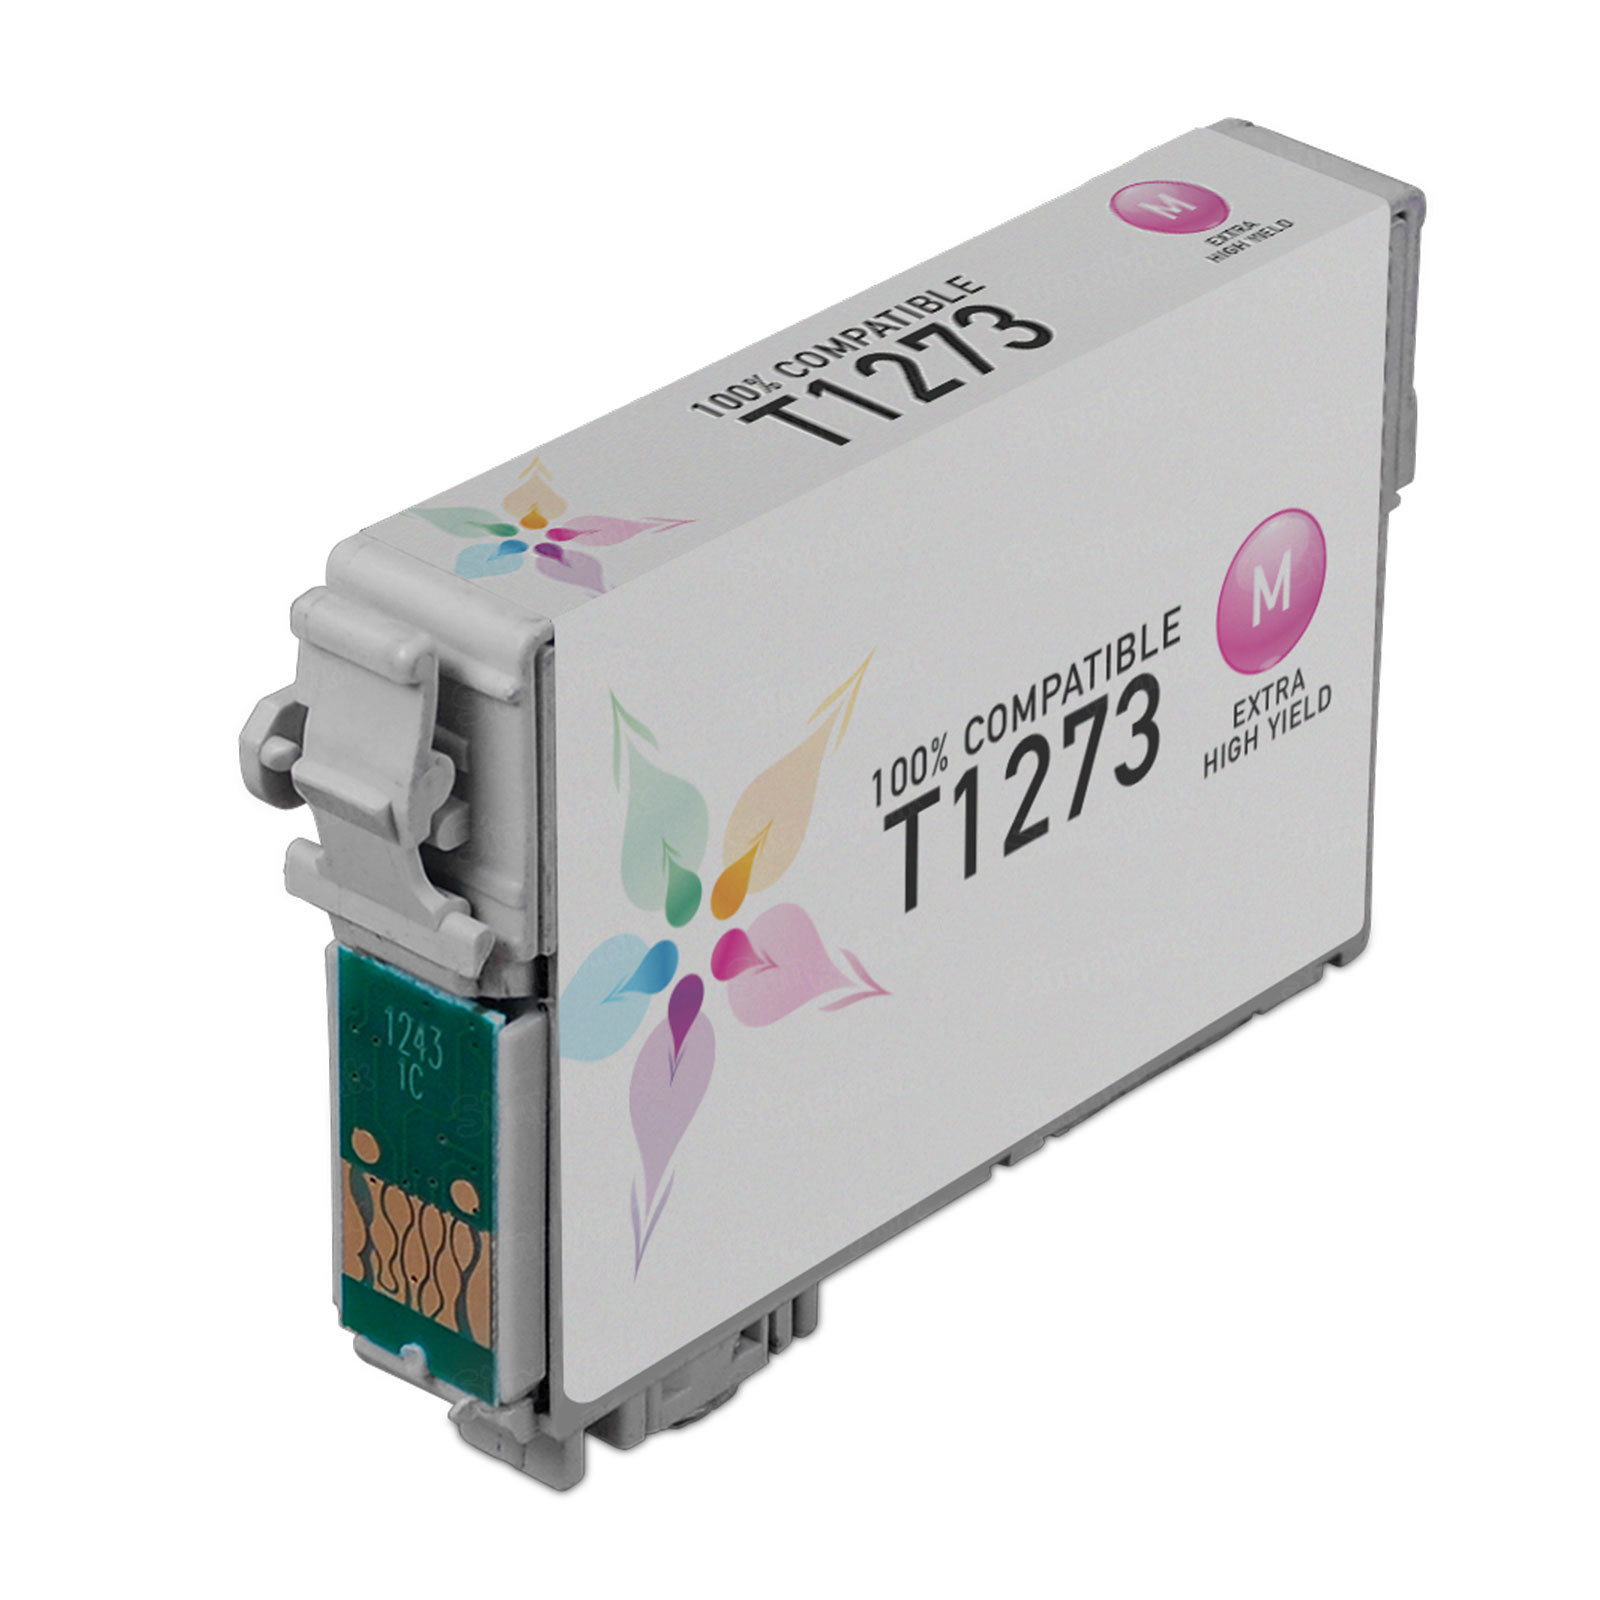 Epson Remanufactured T127320 (T1273) EHY Magenta Inkjet Cartridge